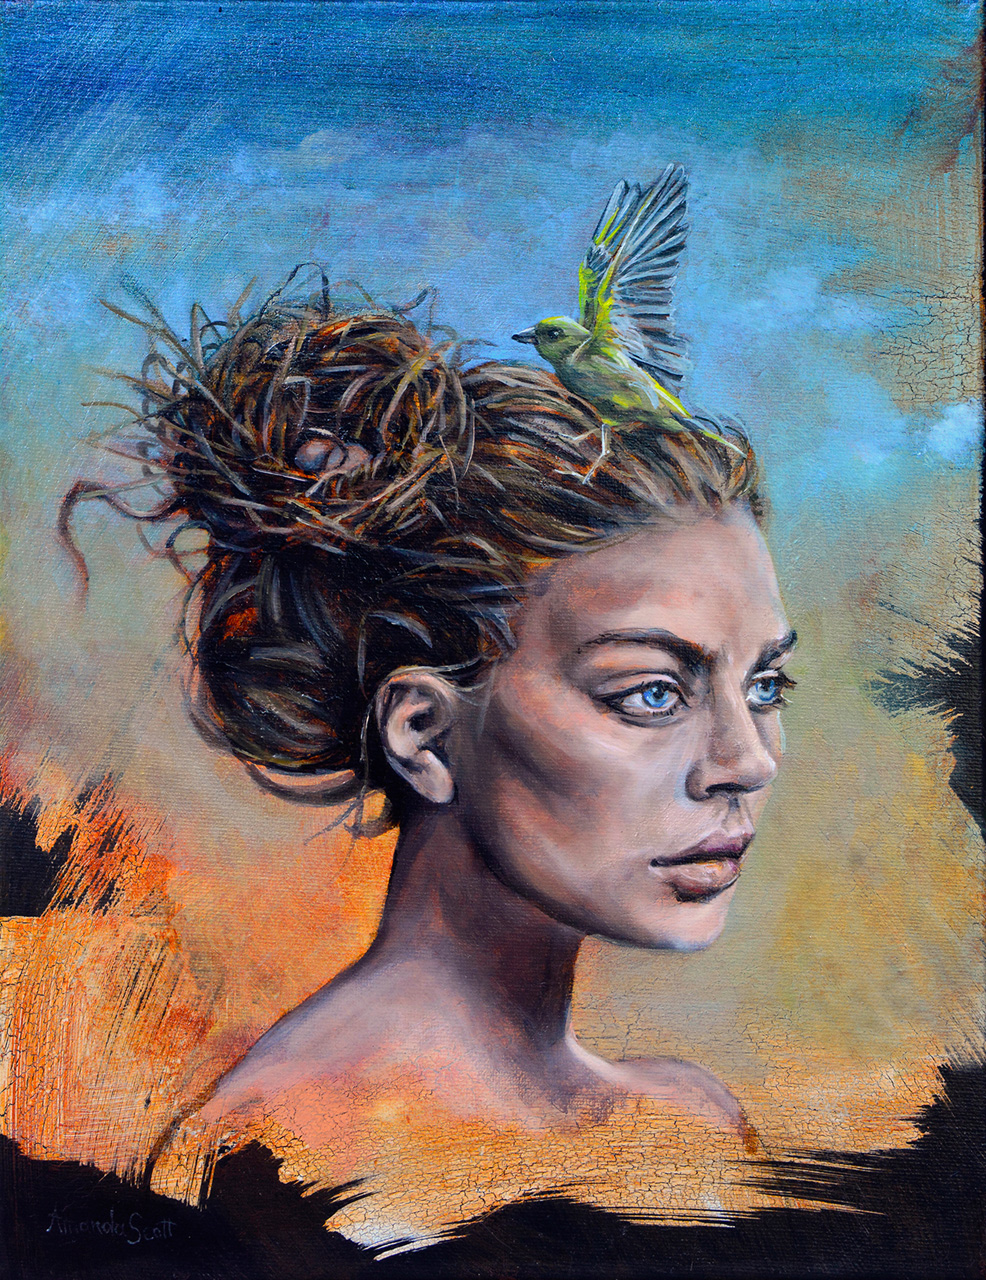 Gaea by Amanda Scott oil on canvas of woman with bird in her hair